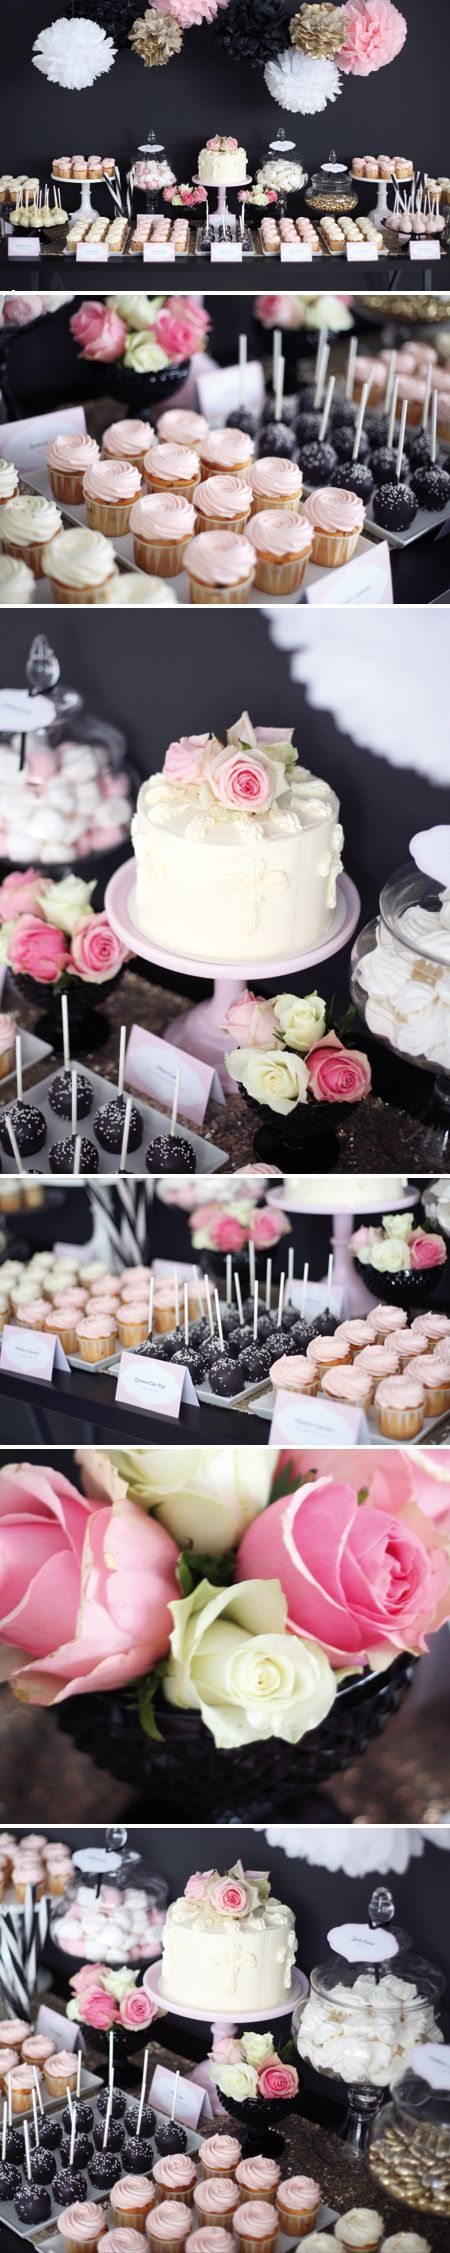 Wedding Dessert Table Ideas that will Blow your Mind: Create Yours!